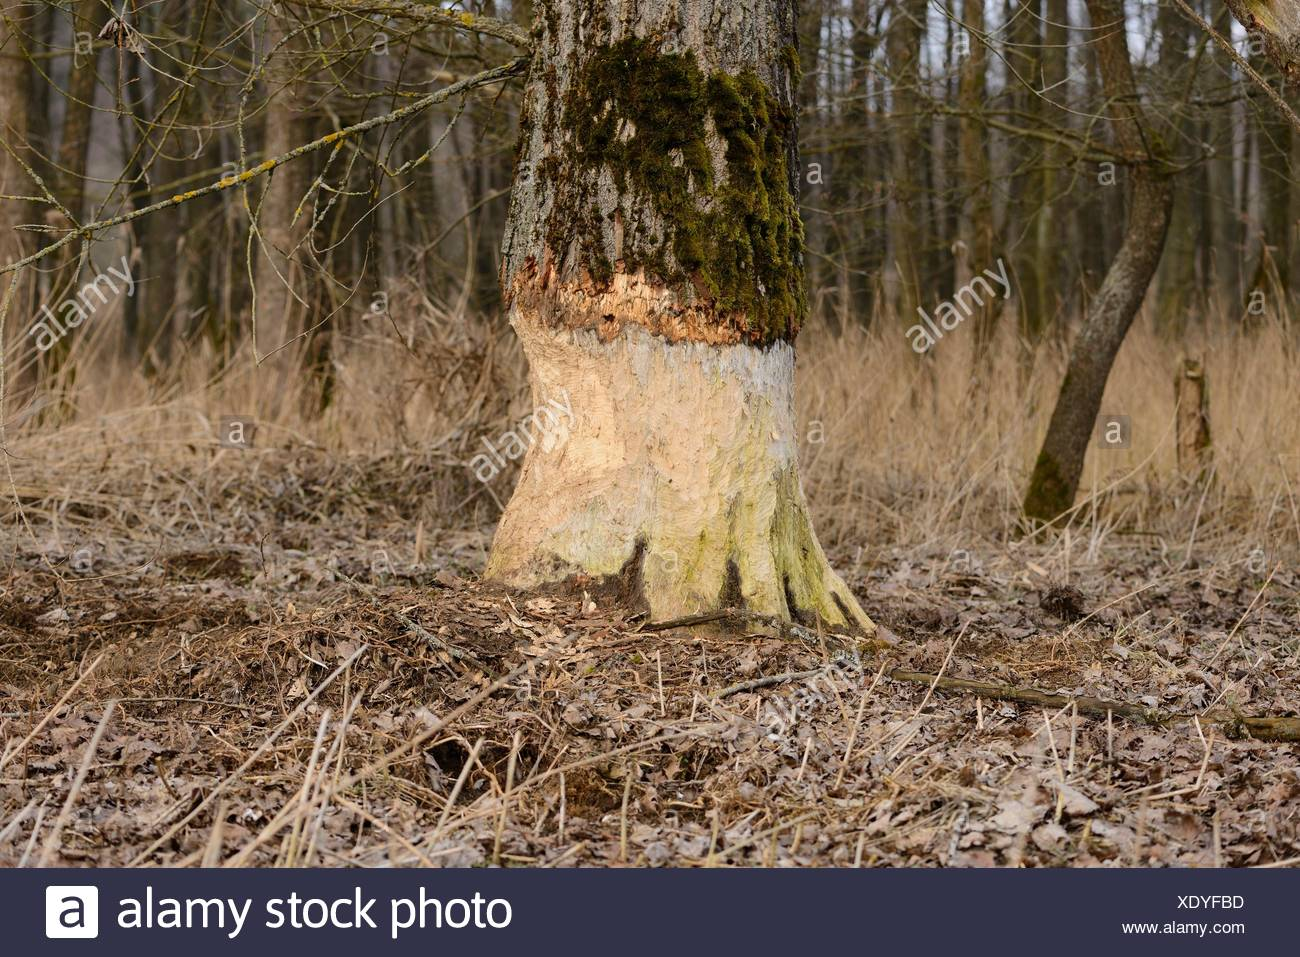 Aspen, Populus tremula, damaged by a beaver, Upper Palatinate, Bavaria, Germany, Europe - Stock Image